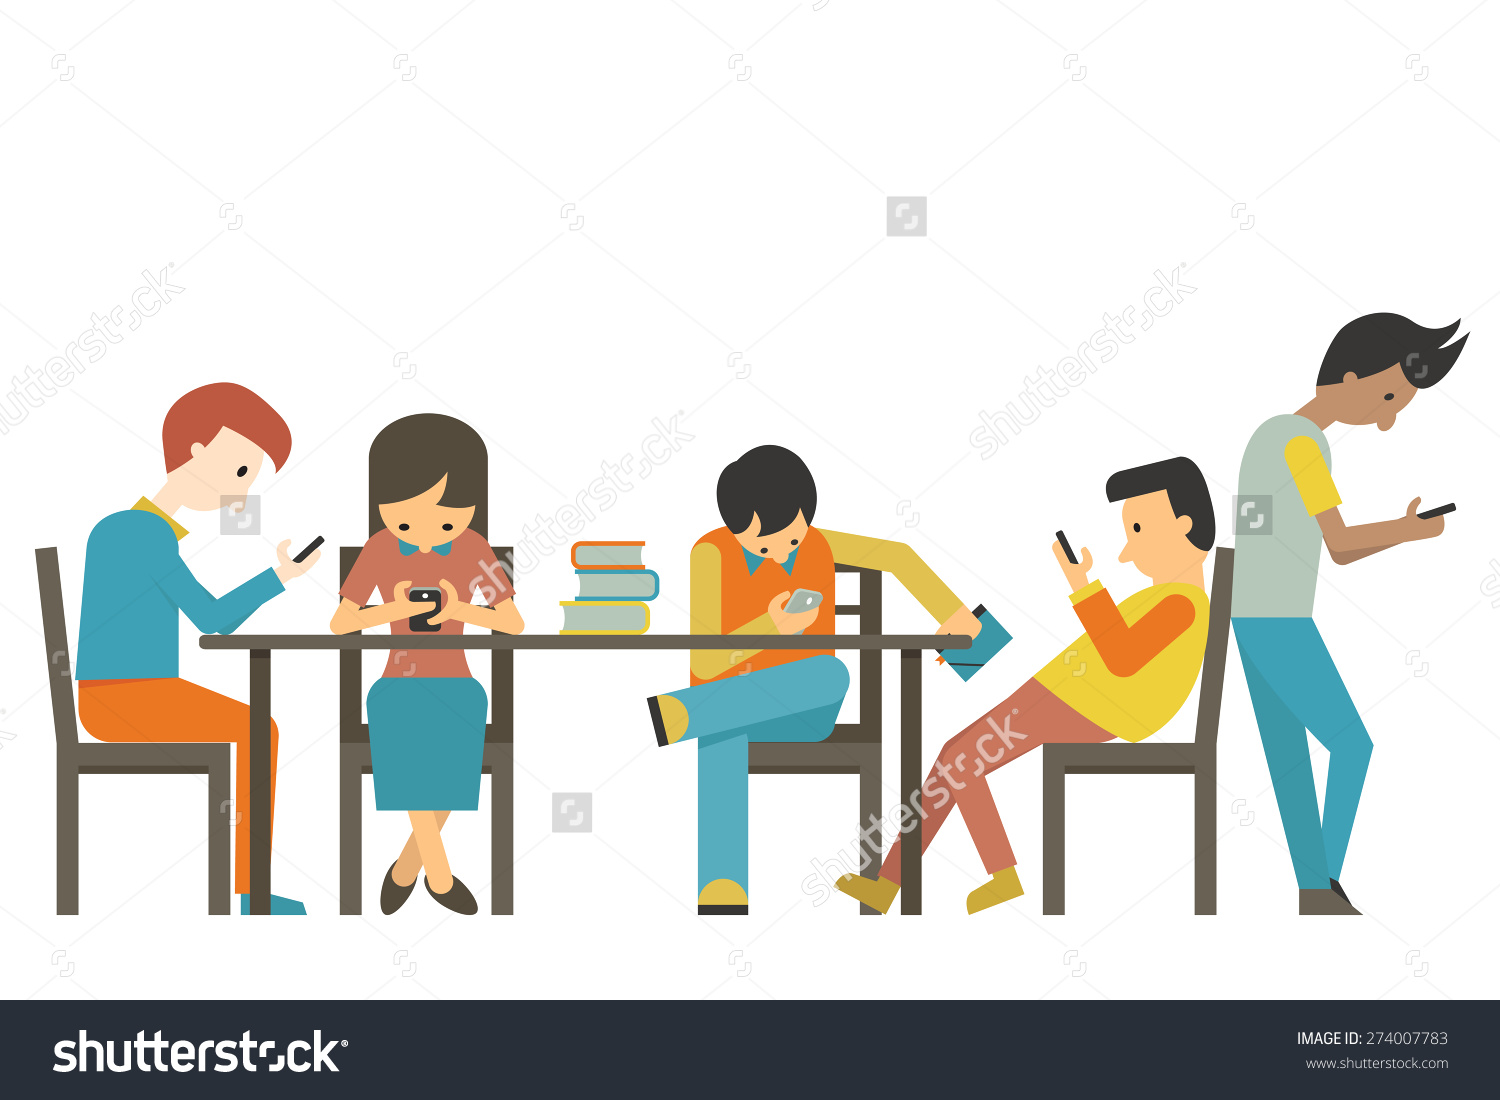 Group Student Teen Age Using Smartphone Stock Vector 274007783.